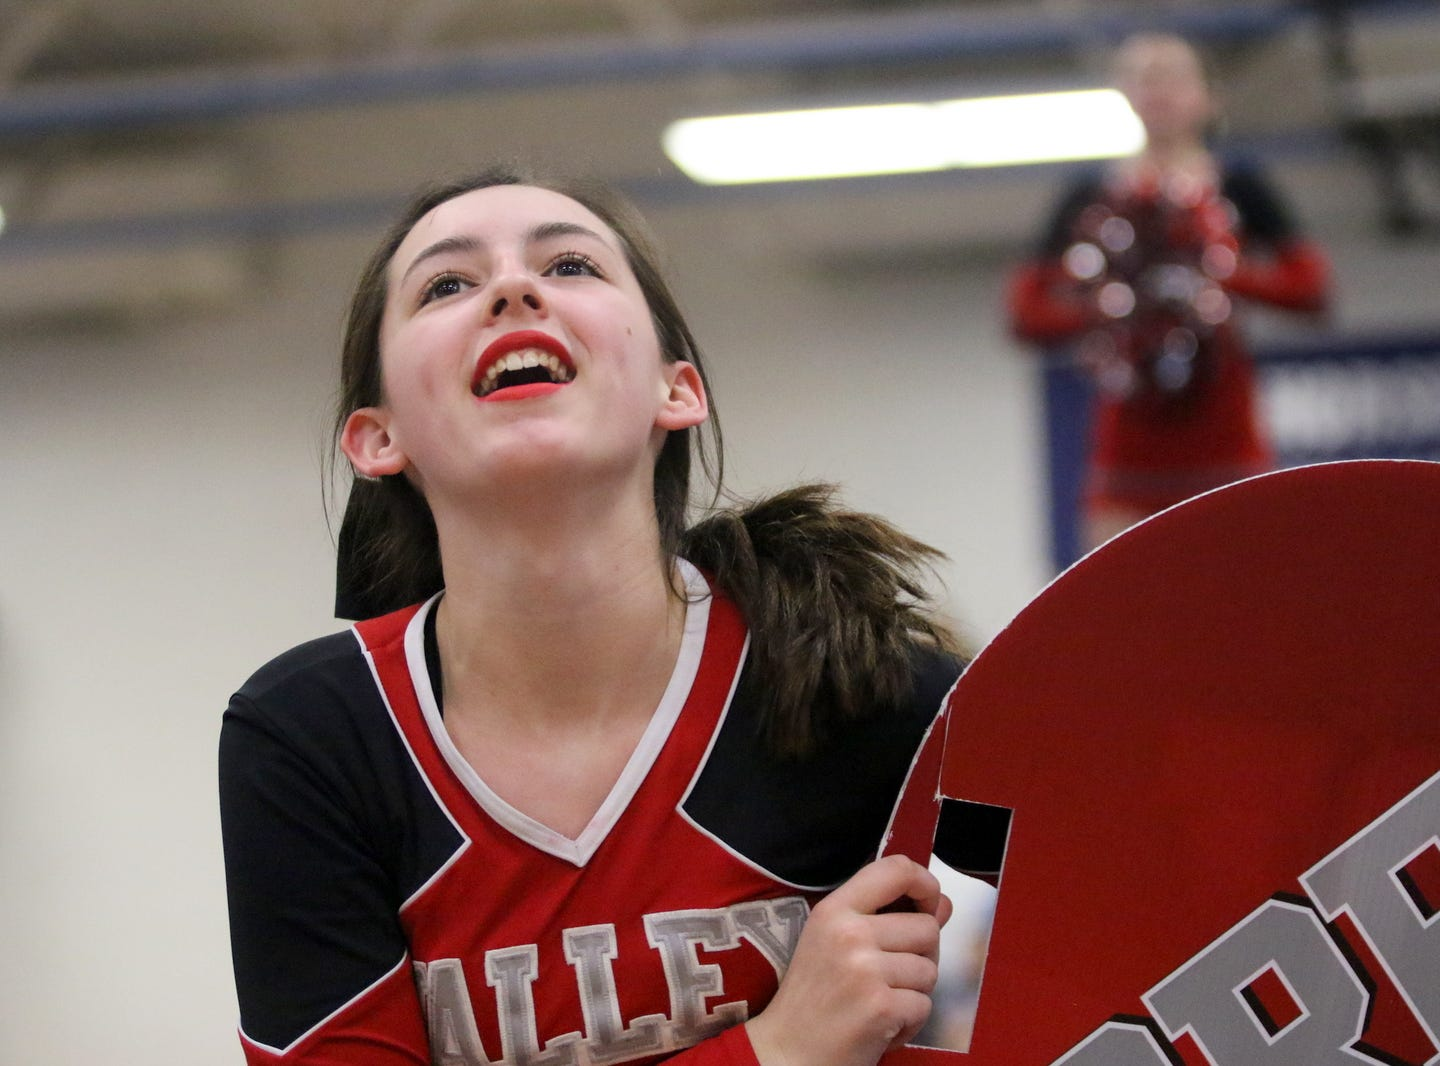 Chenango Valley junior varsity cheerleaders compete at the STAC Winter Cheer Championships on Feb. 16, 2019 at Horseheads Middle School.